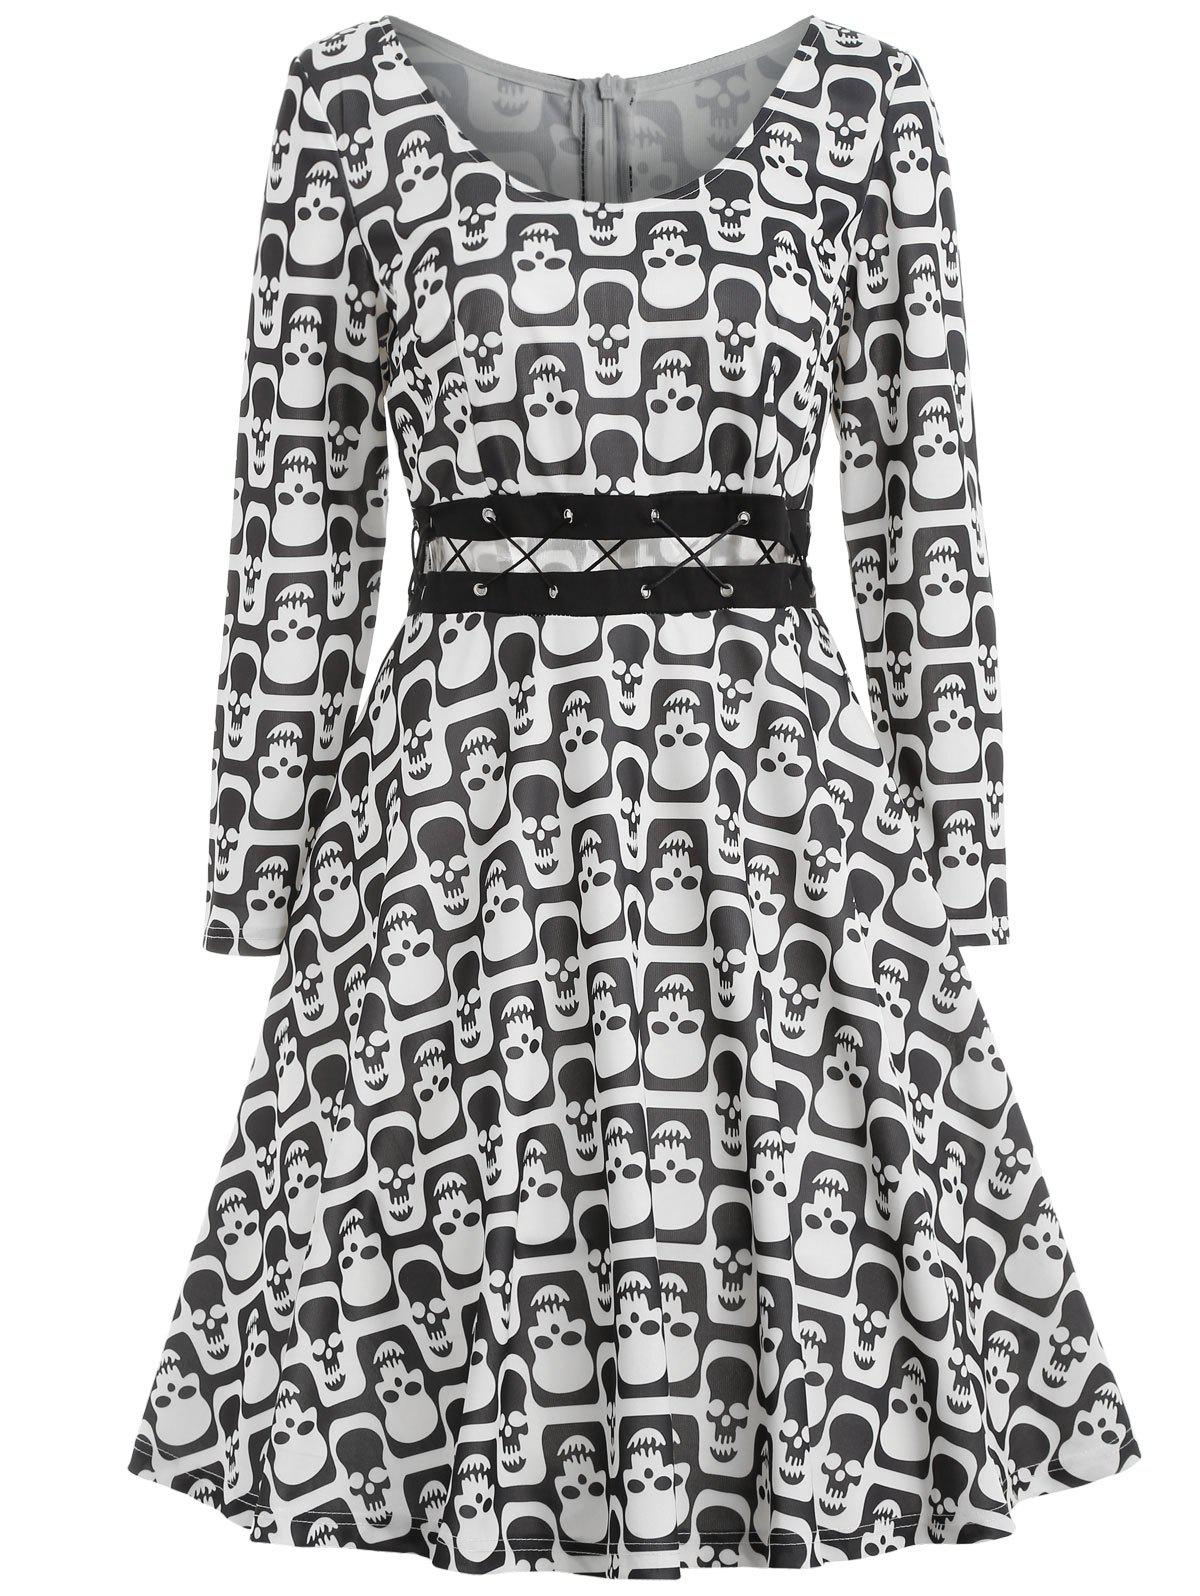 Trendy Halloween Skull Print Criss Cross Dress